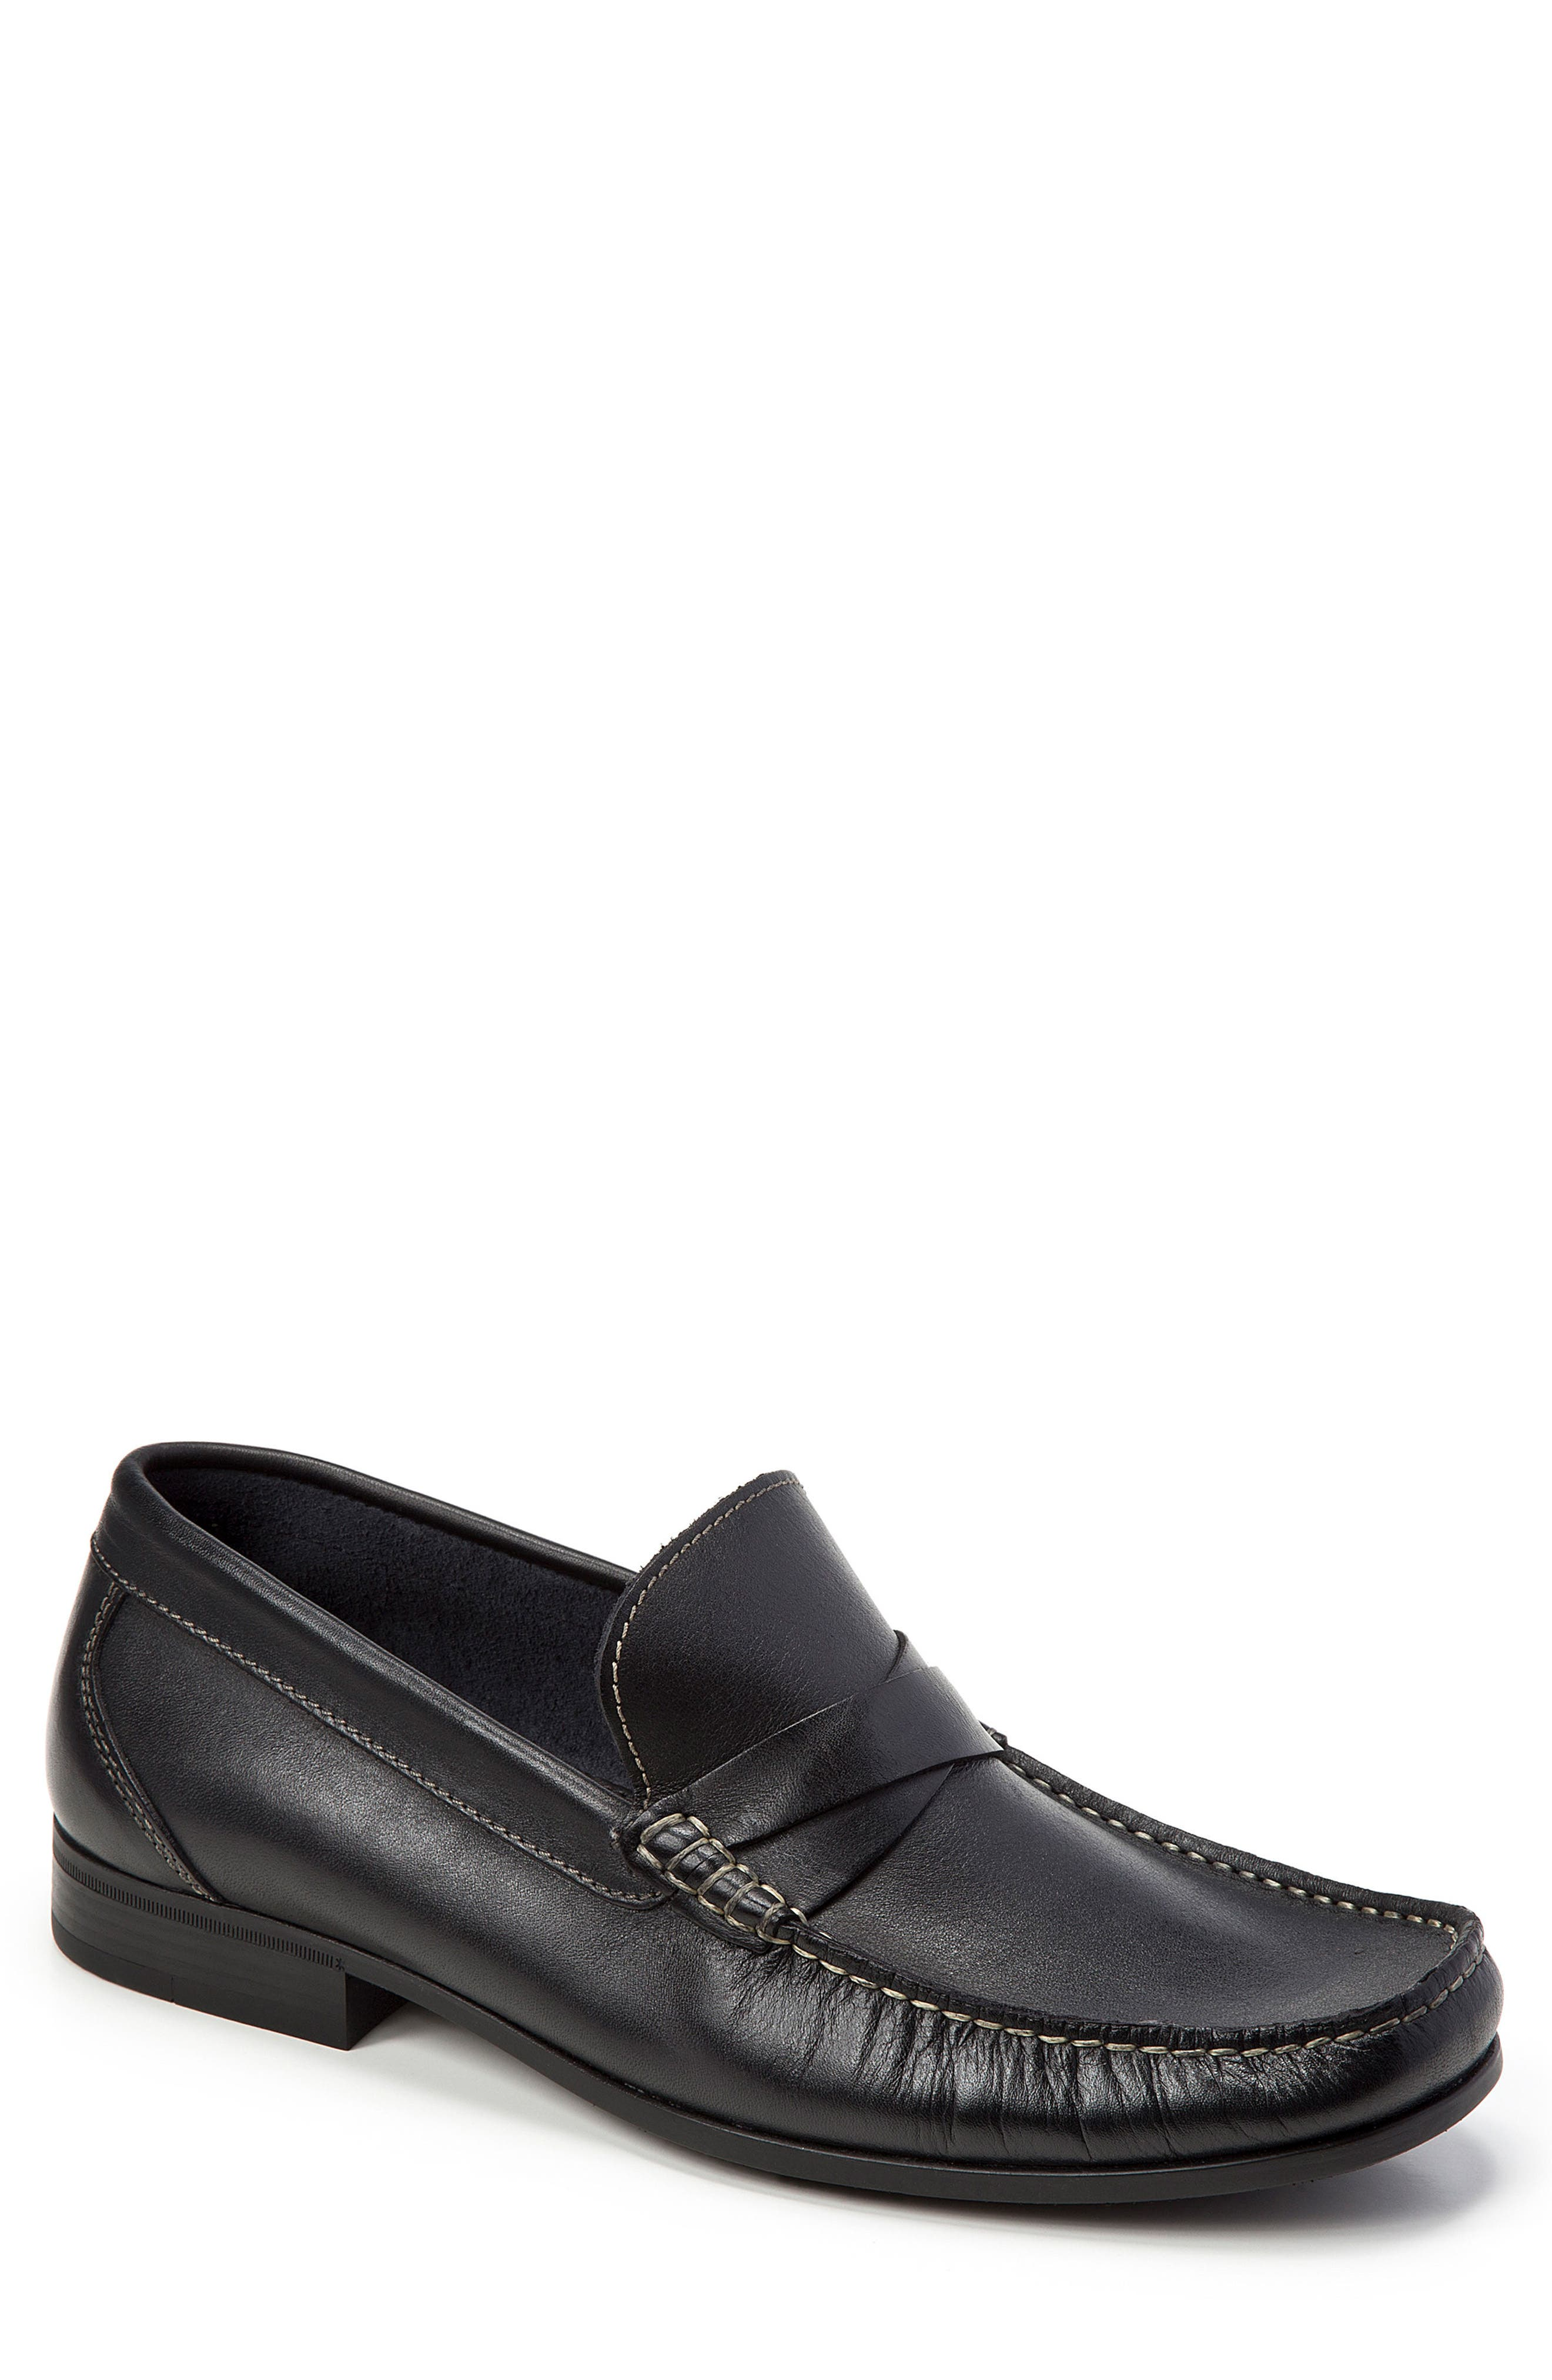 Abruzo Cross Strap Loafer,                             Main thumbnail 1, color,                             Black